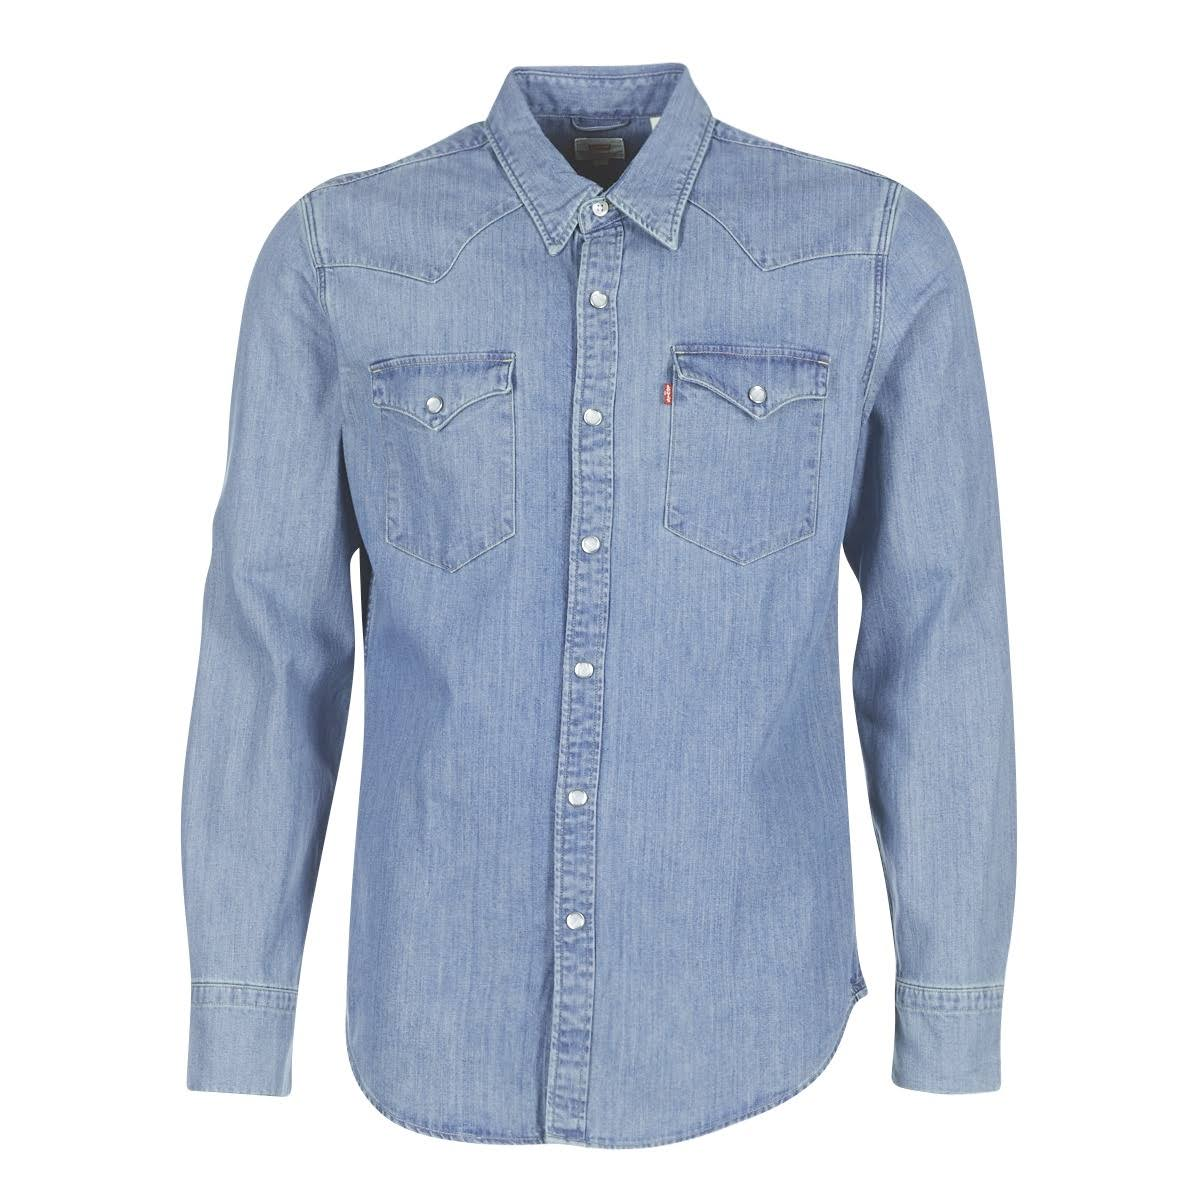 65816 Caststonered Shirt hombres Western Levis Camisas 8qAd8w